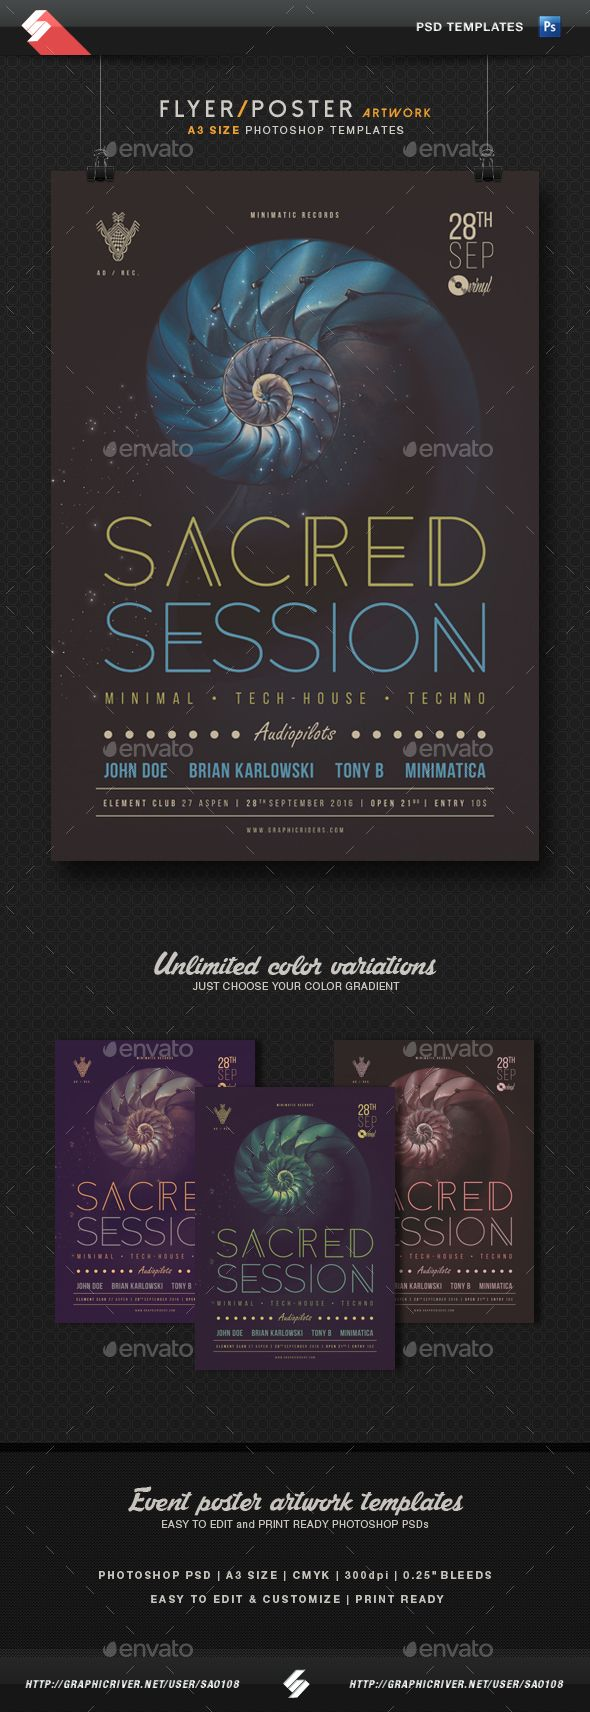 Sacred Session - Minimal Techno Party Poster Template A3 PSD. Download here: http://graphicriver.net/item/sacred-session-minimal-techno-party-poster-template-a3/15409773?ref=ksioks